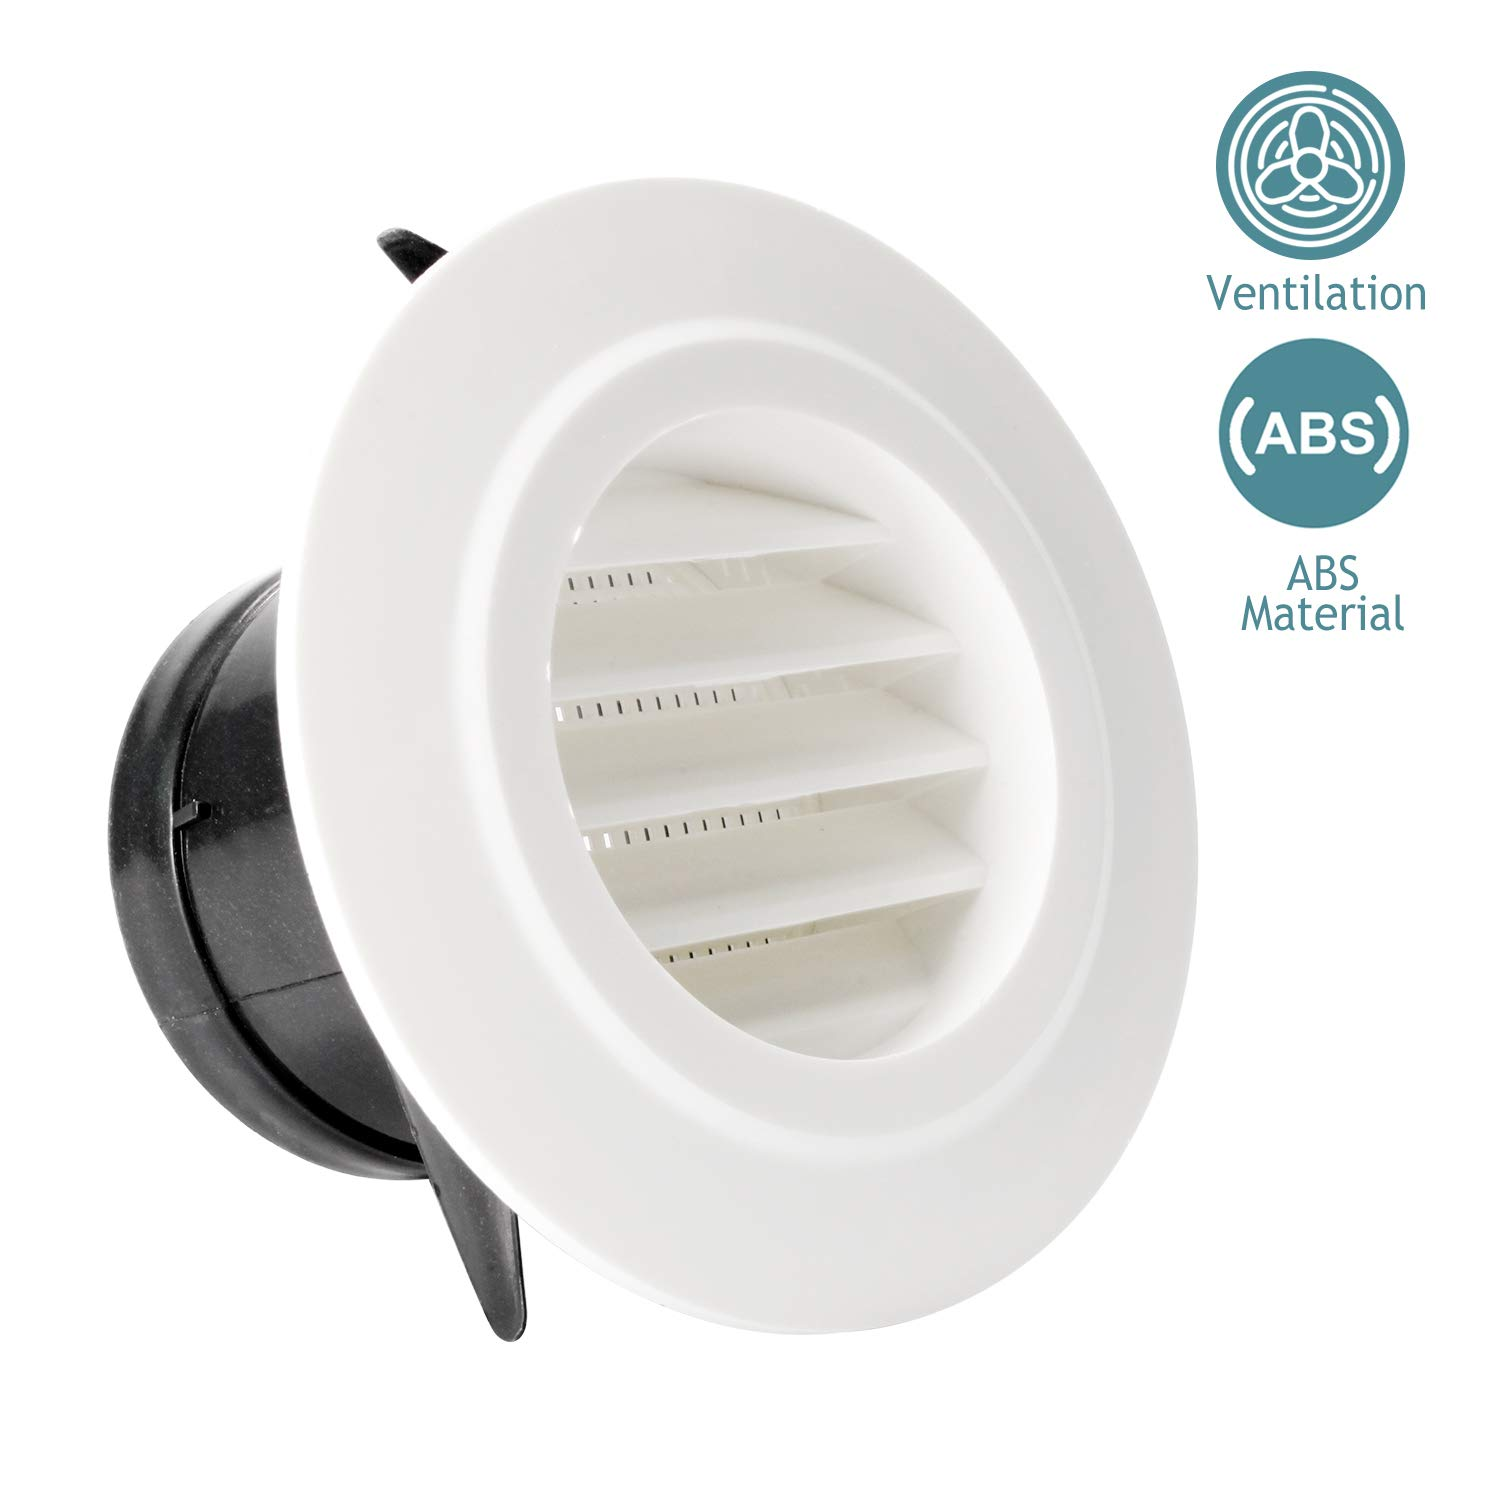 3 Inch Vent Cover Round Soffit Vent for Exhaust Fan w ...